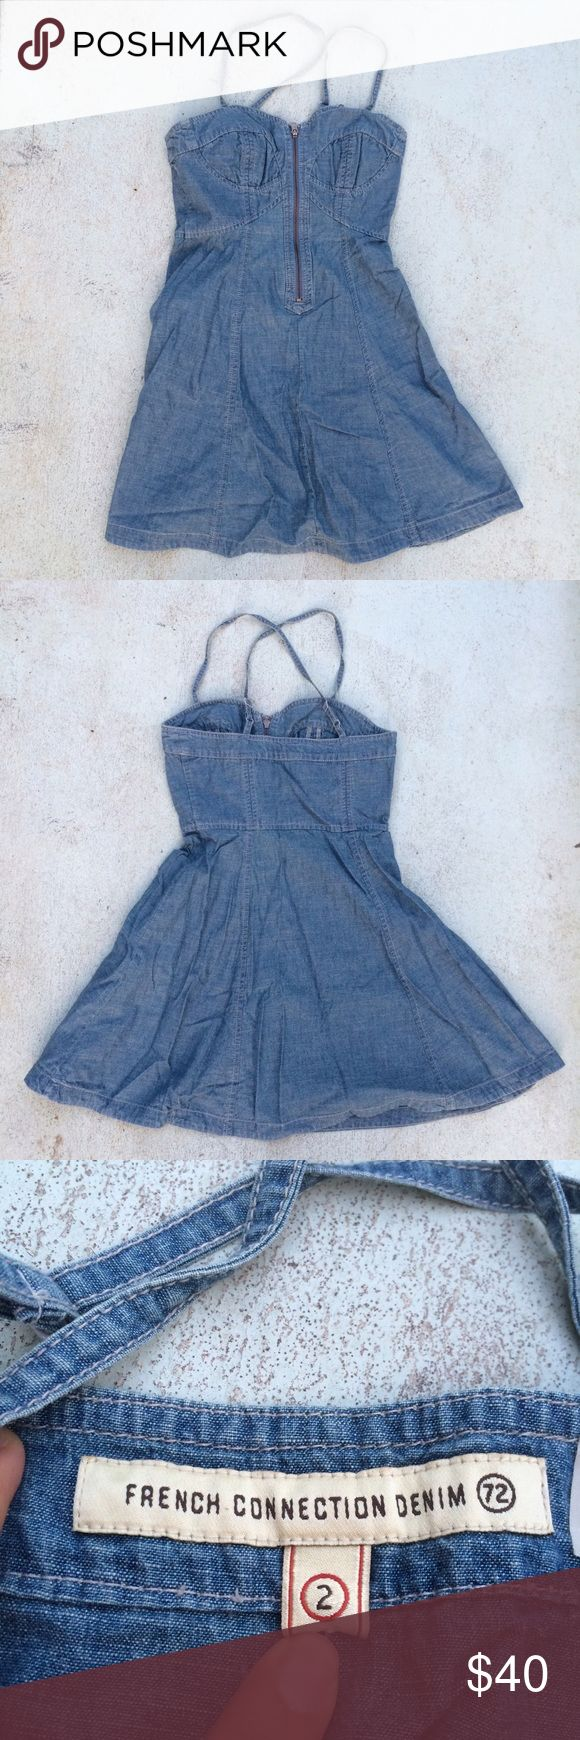 French Connection Denim Bustier Criss Cross  Dress Criss cross back and bustier bodice. Zipper front. Flared skirt. In excellent preowned  condition! French Connection Dresses Mini